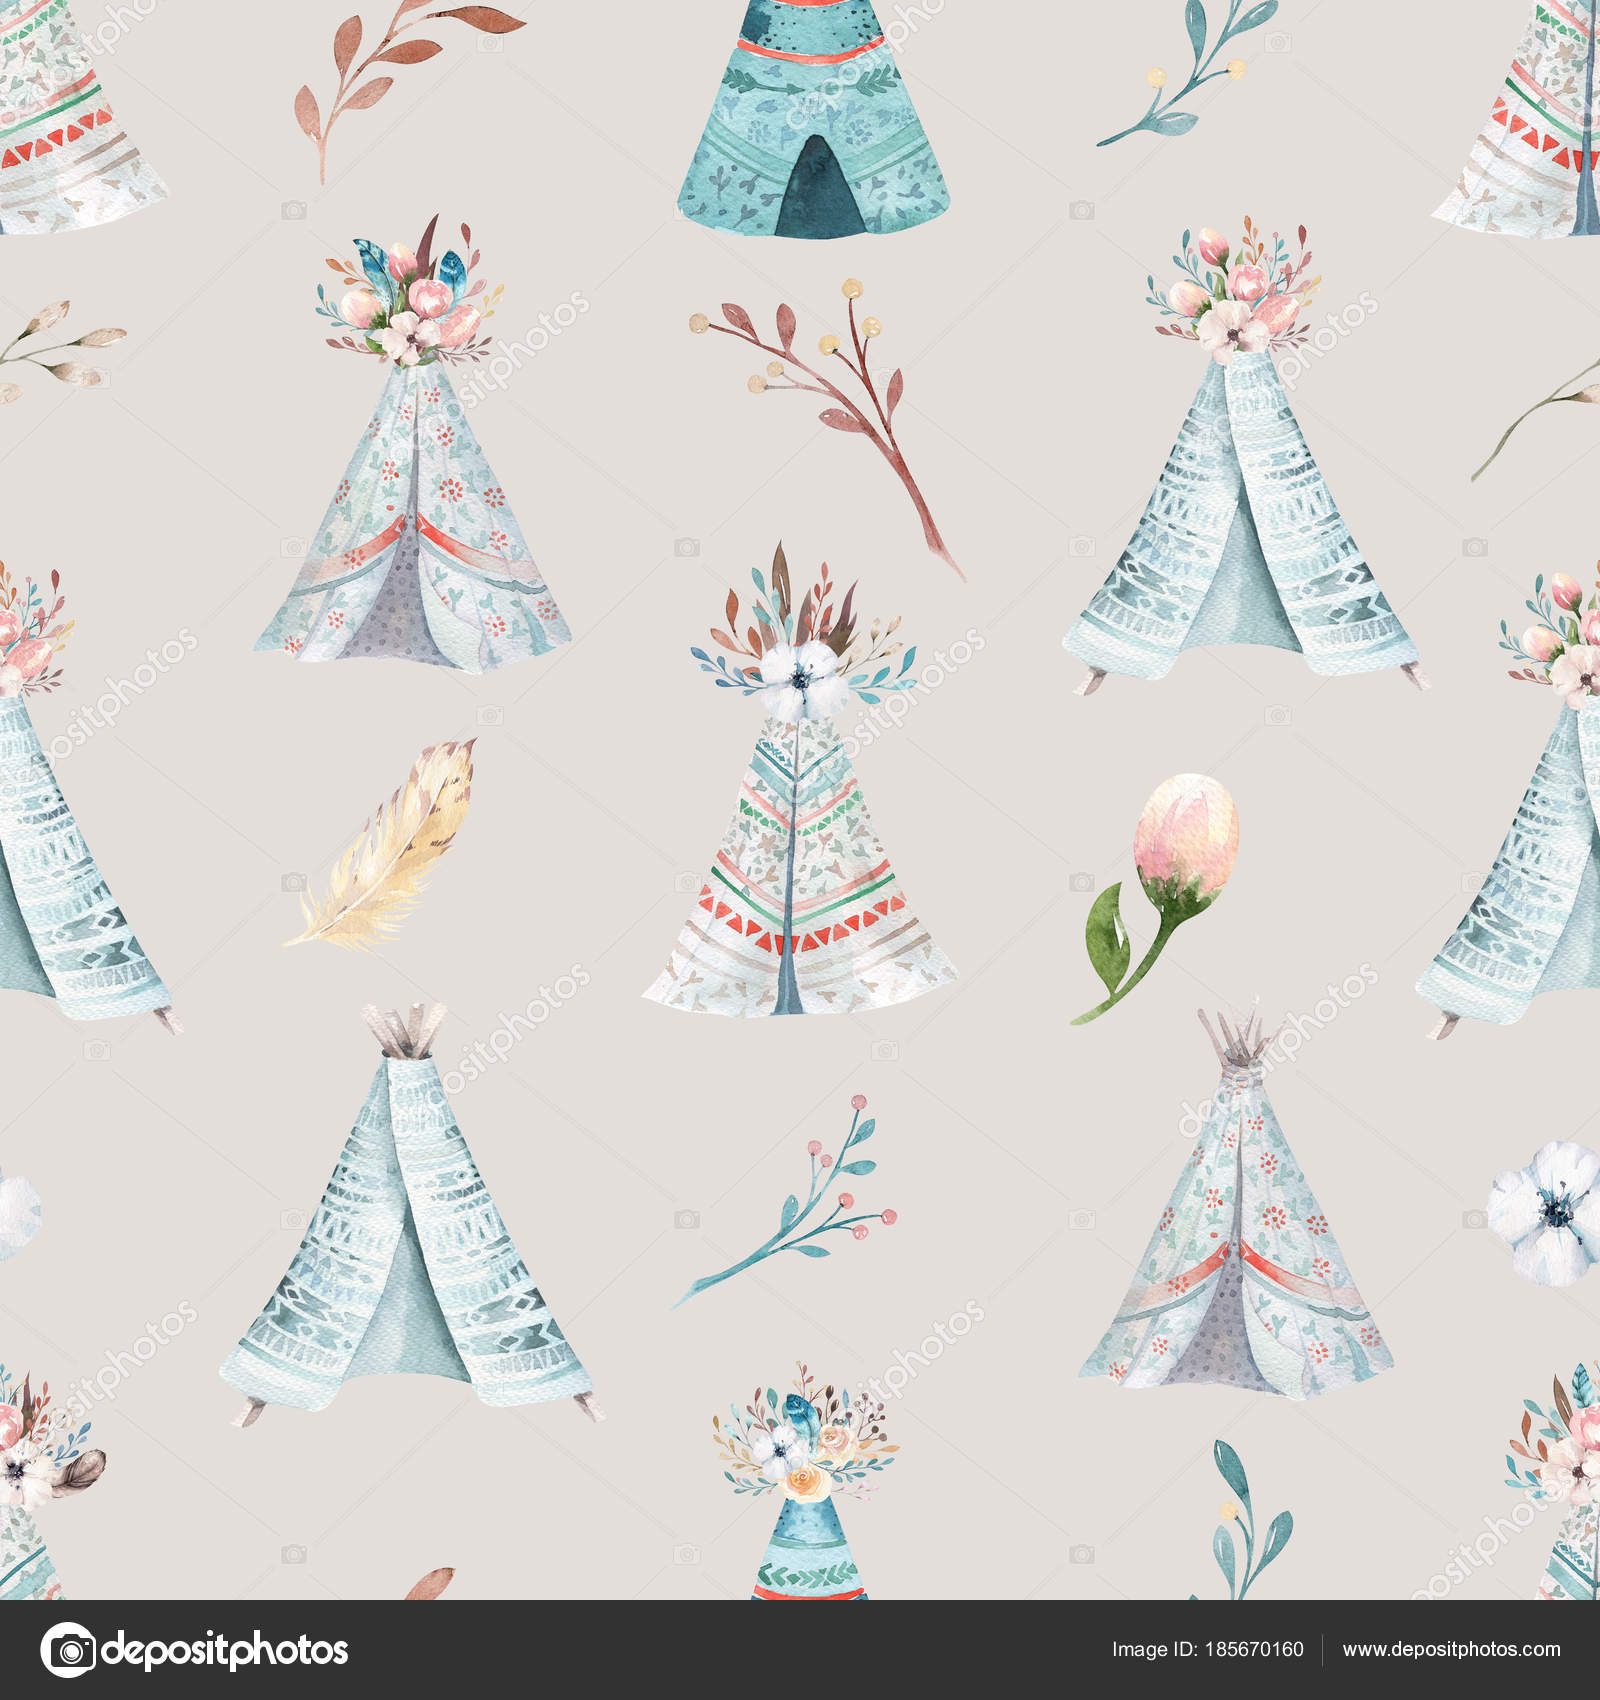 Seamless Boho Watercolor Wallpaper With Blossom Flowers And Leaves Spring Nature Illustration Vintage Design